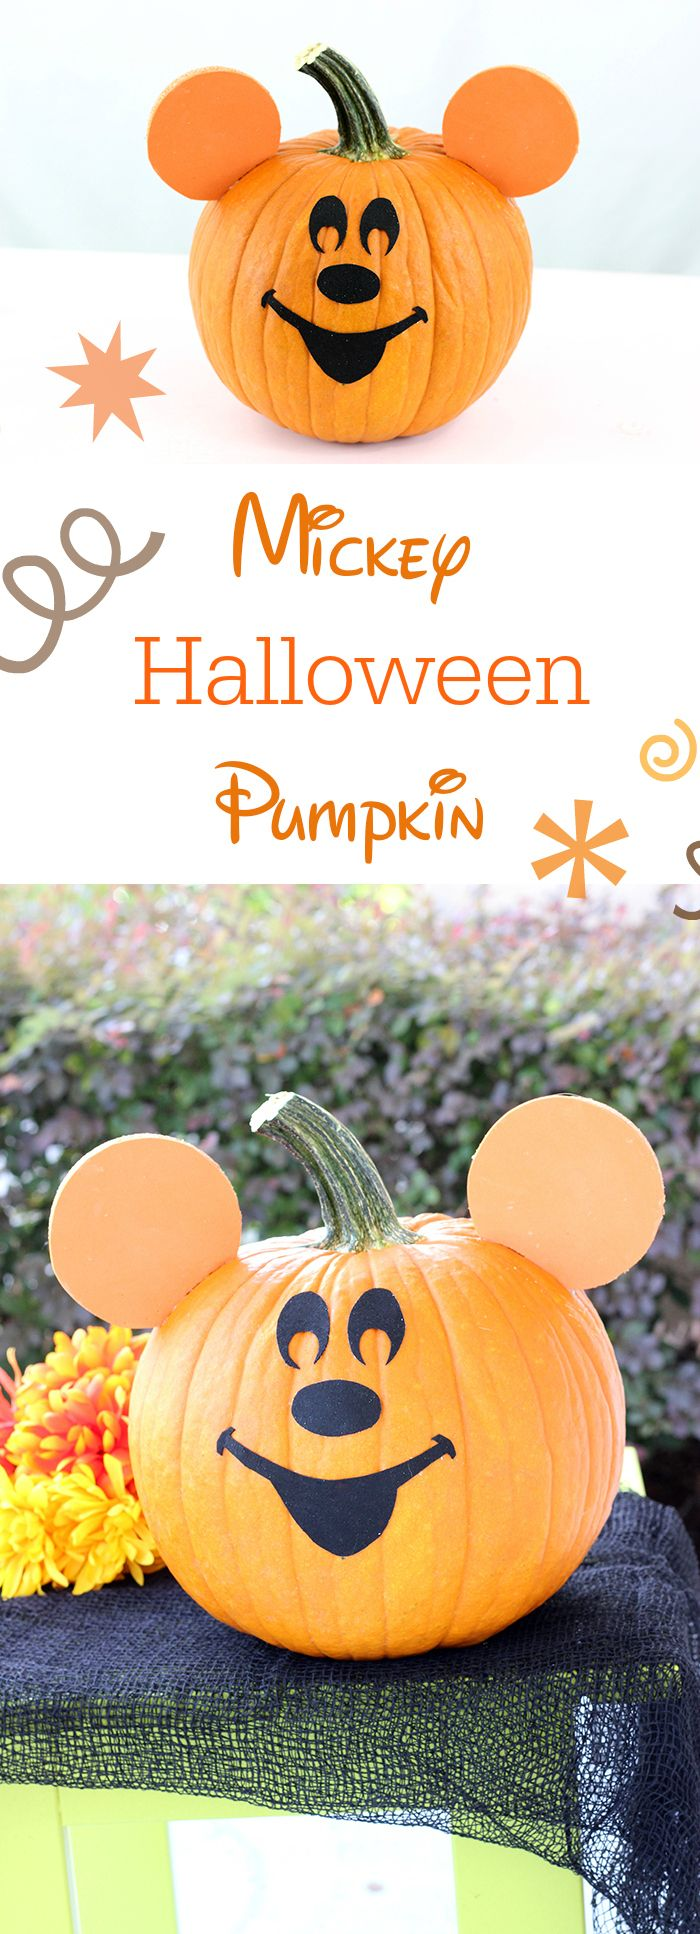 Mickey Halloween Pumpkin. Super easy DIY comes together so easily for Mickey Mouse and Disney fans.